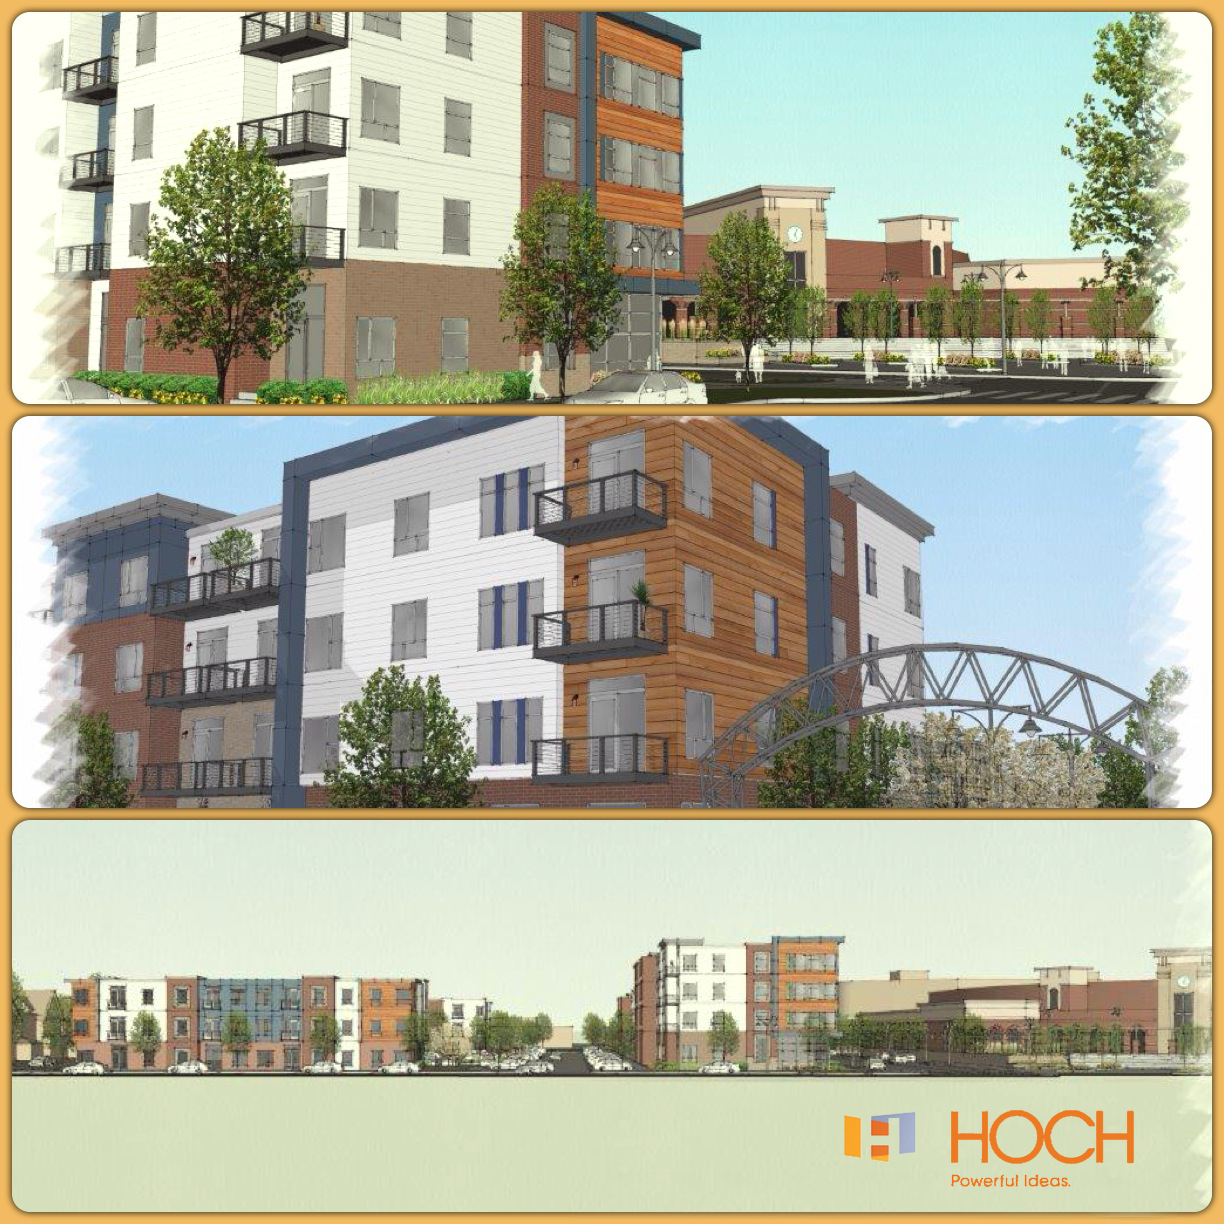 HOCH Concept Design For Urban Housing In Downtown Fort